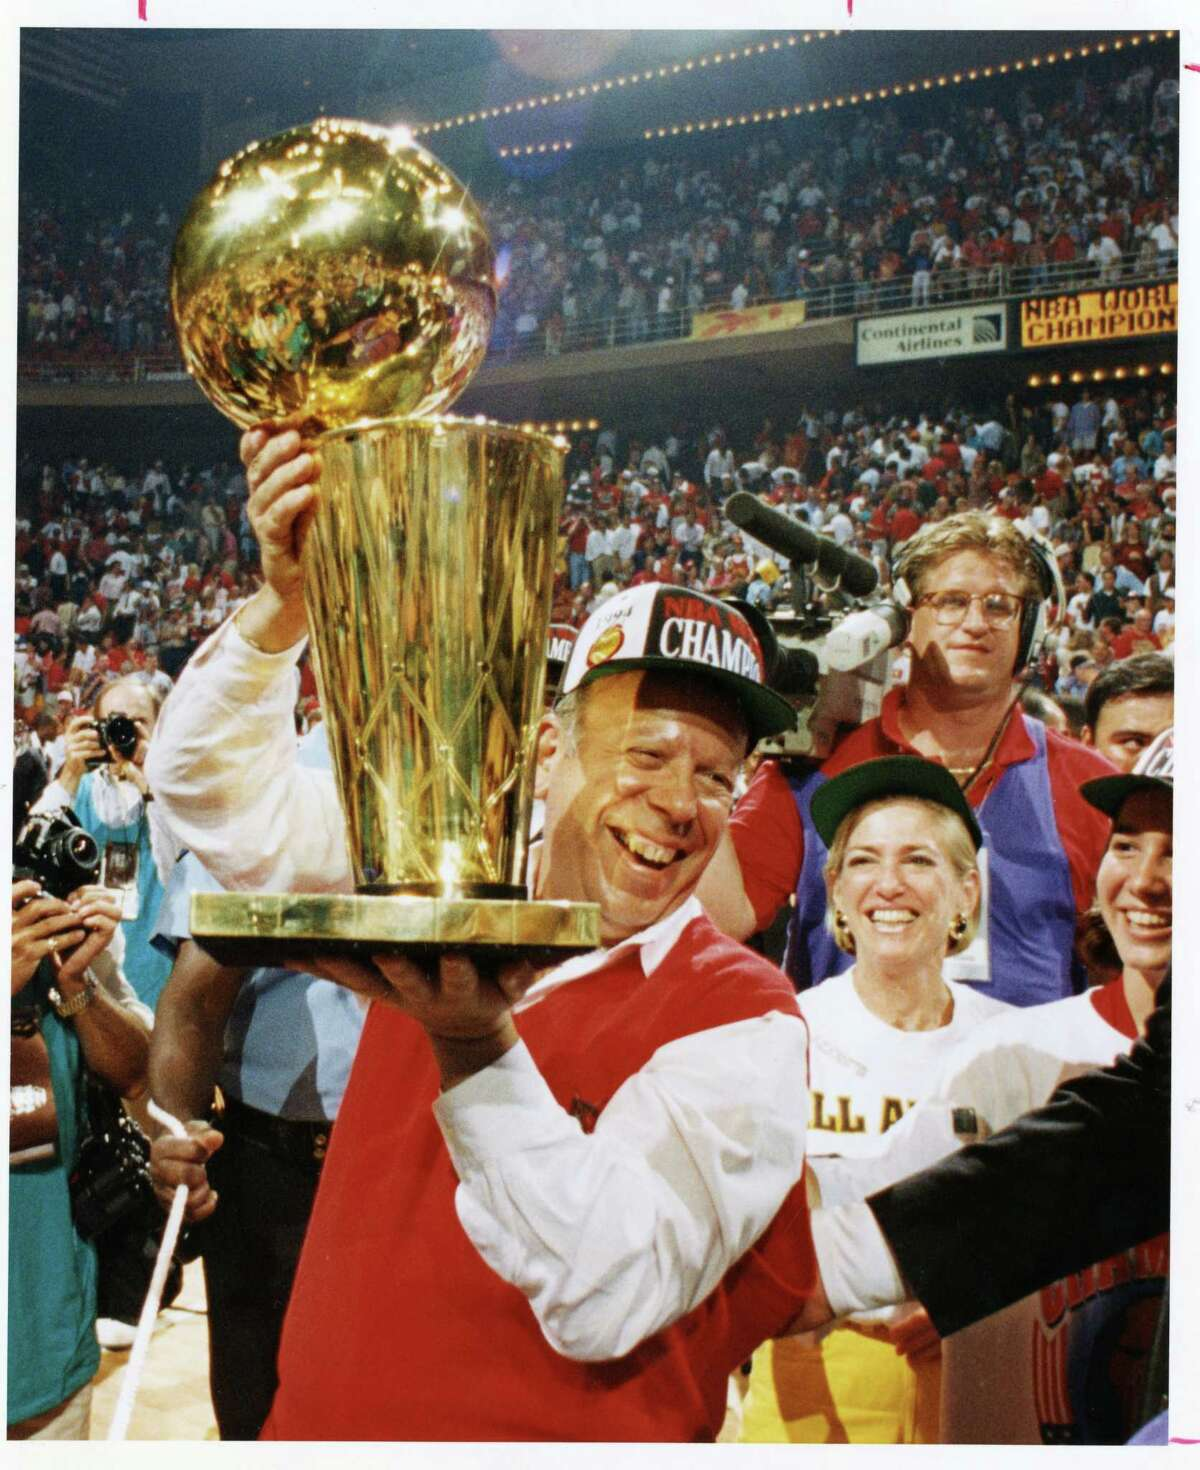 06/22/1994 - Houston Rockets team owner Les Alexander holds the NBA Championship Trophy given to the Houston Rockets after they defeated the New York Knicks in the 7th and final game, June 22, 1994. © Houston Chronicle